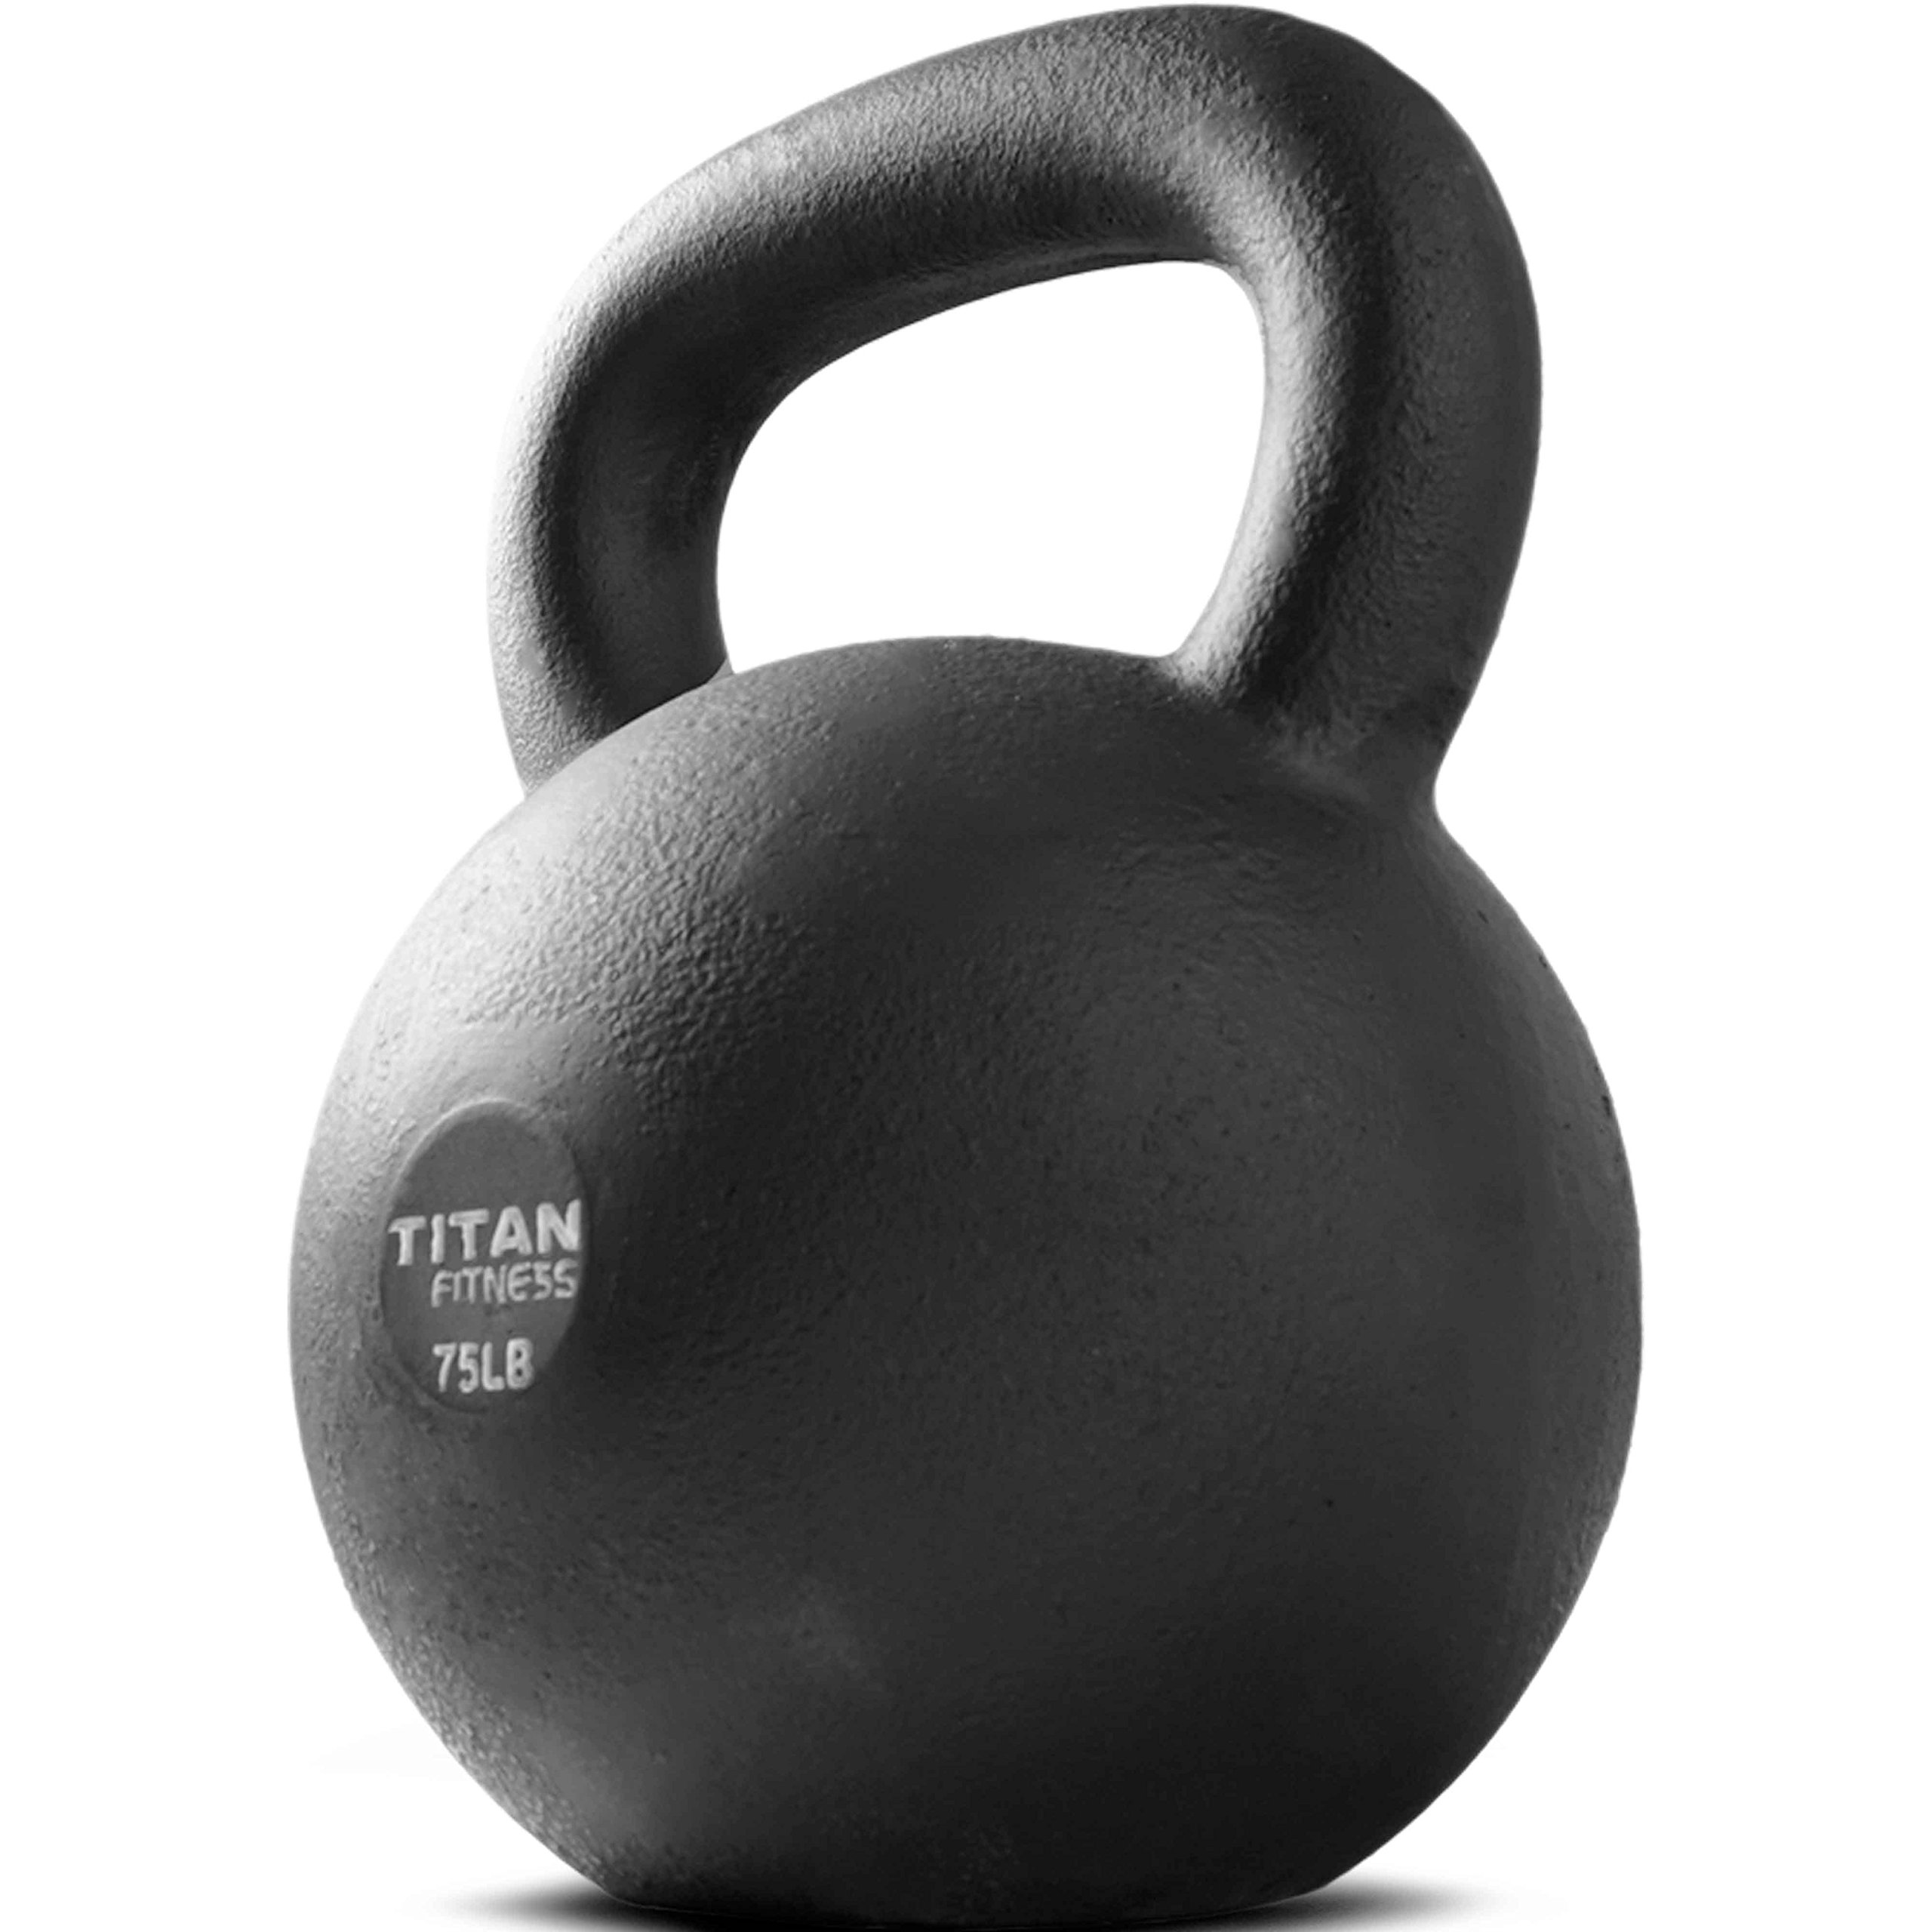 Cast Iron Kettlebell Weight 75 lb Natural Solid Titan Fitness Workout Swing